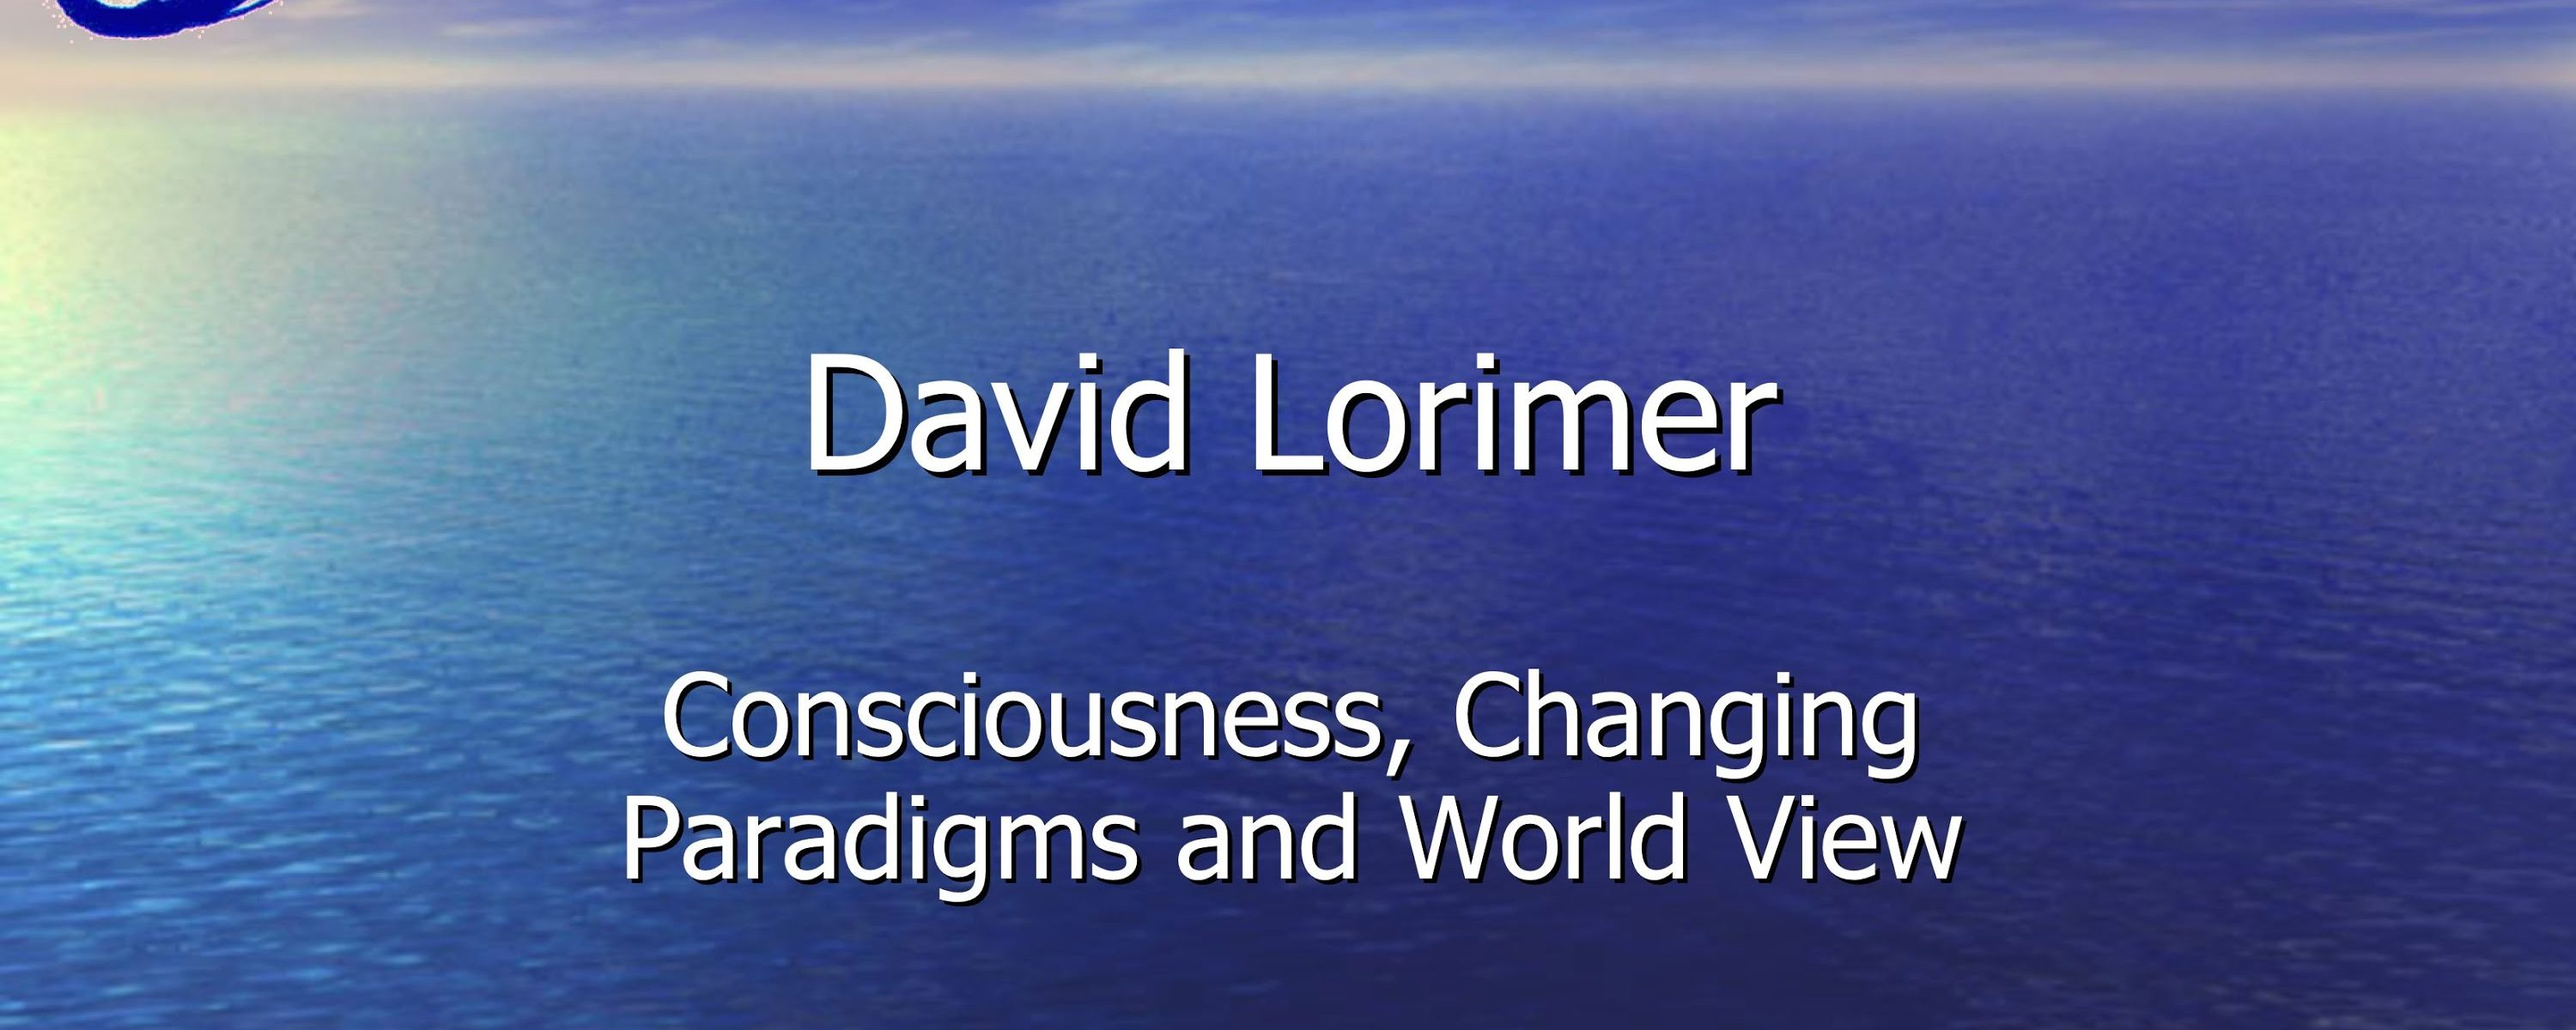 Consciousness, Changing Paradigms and World Views